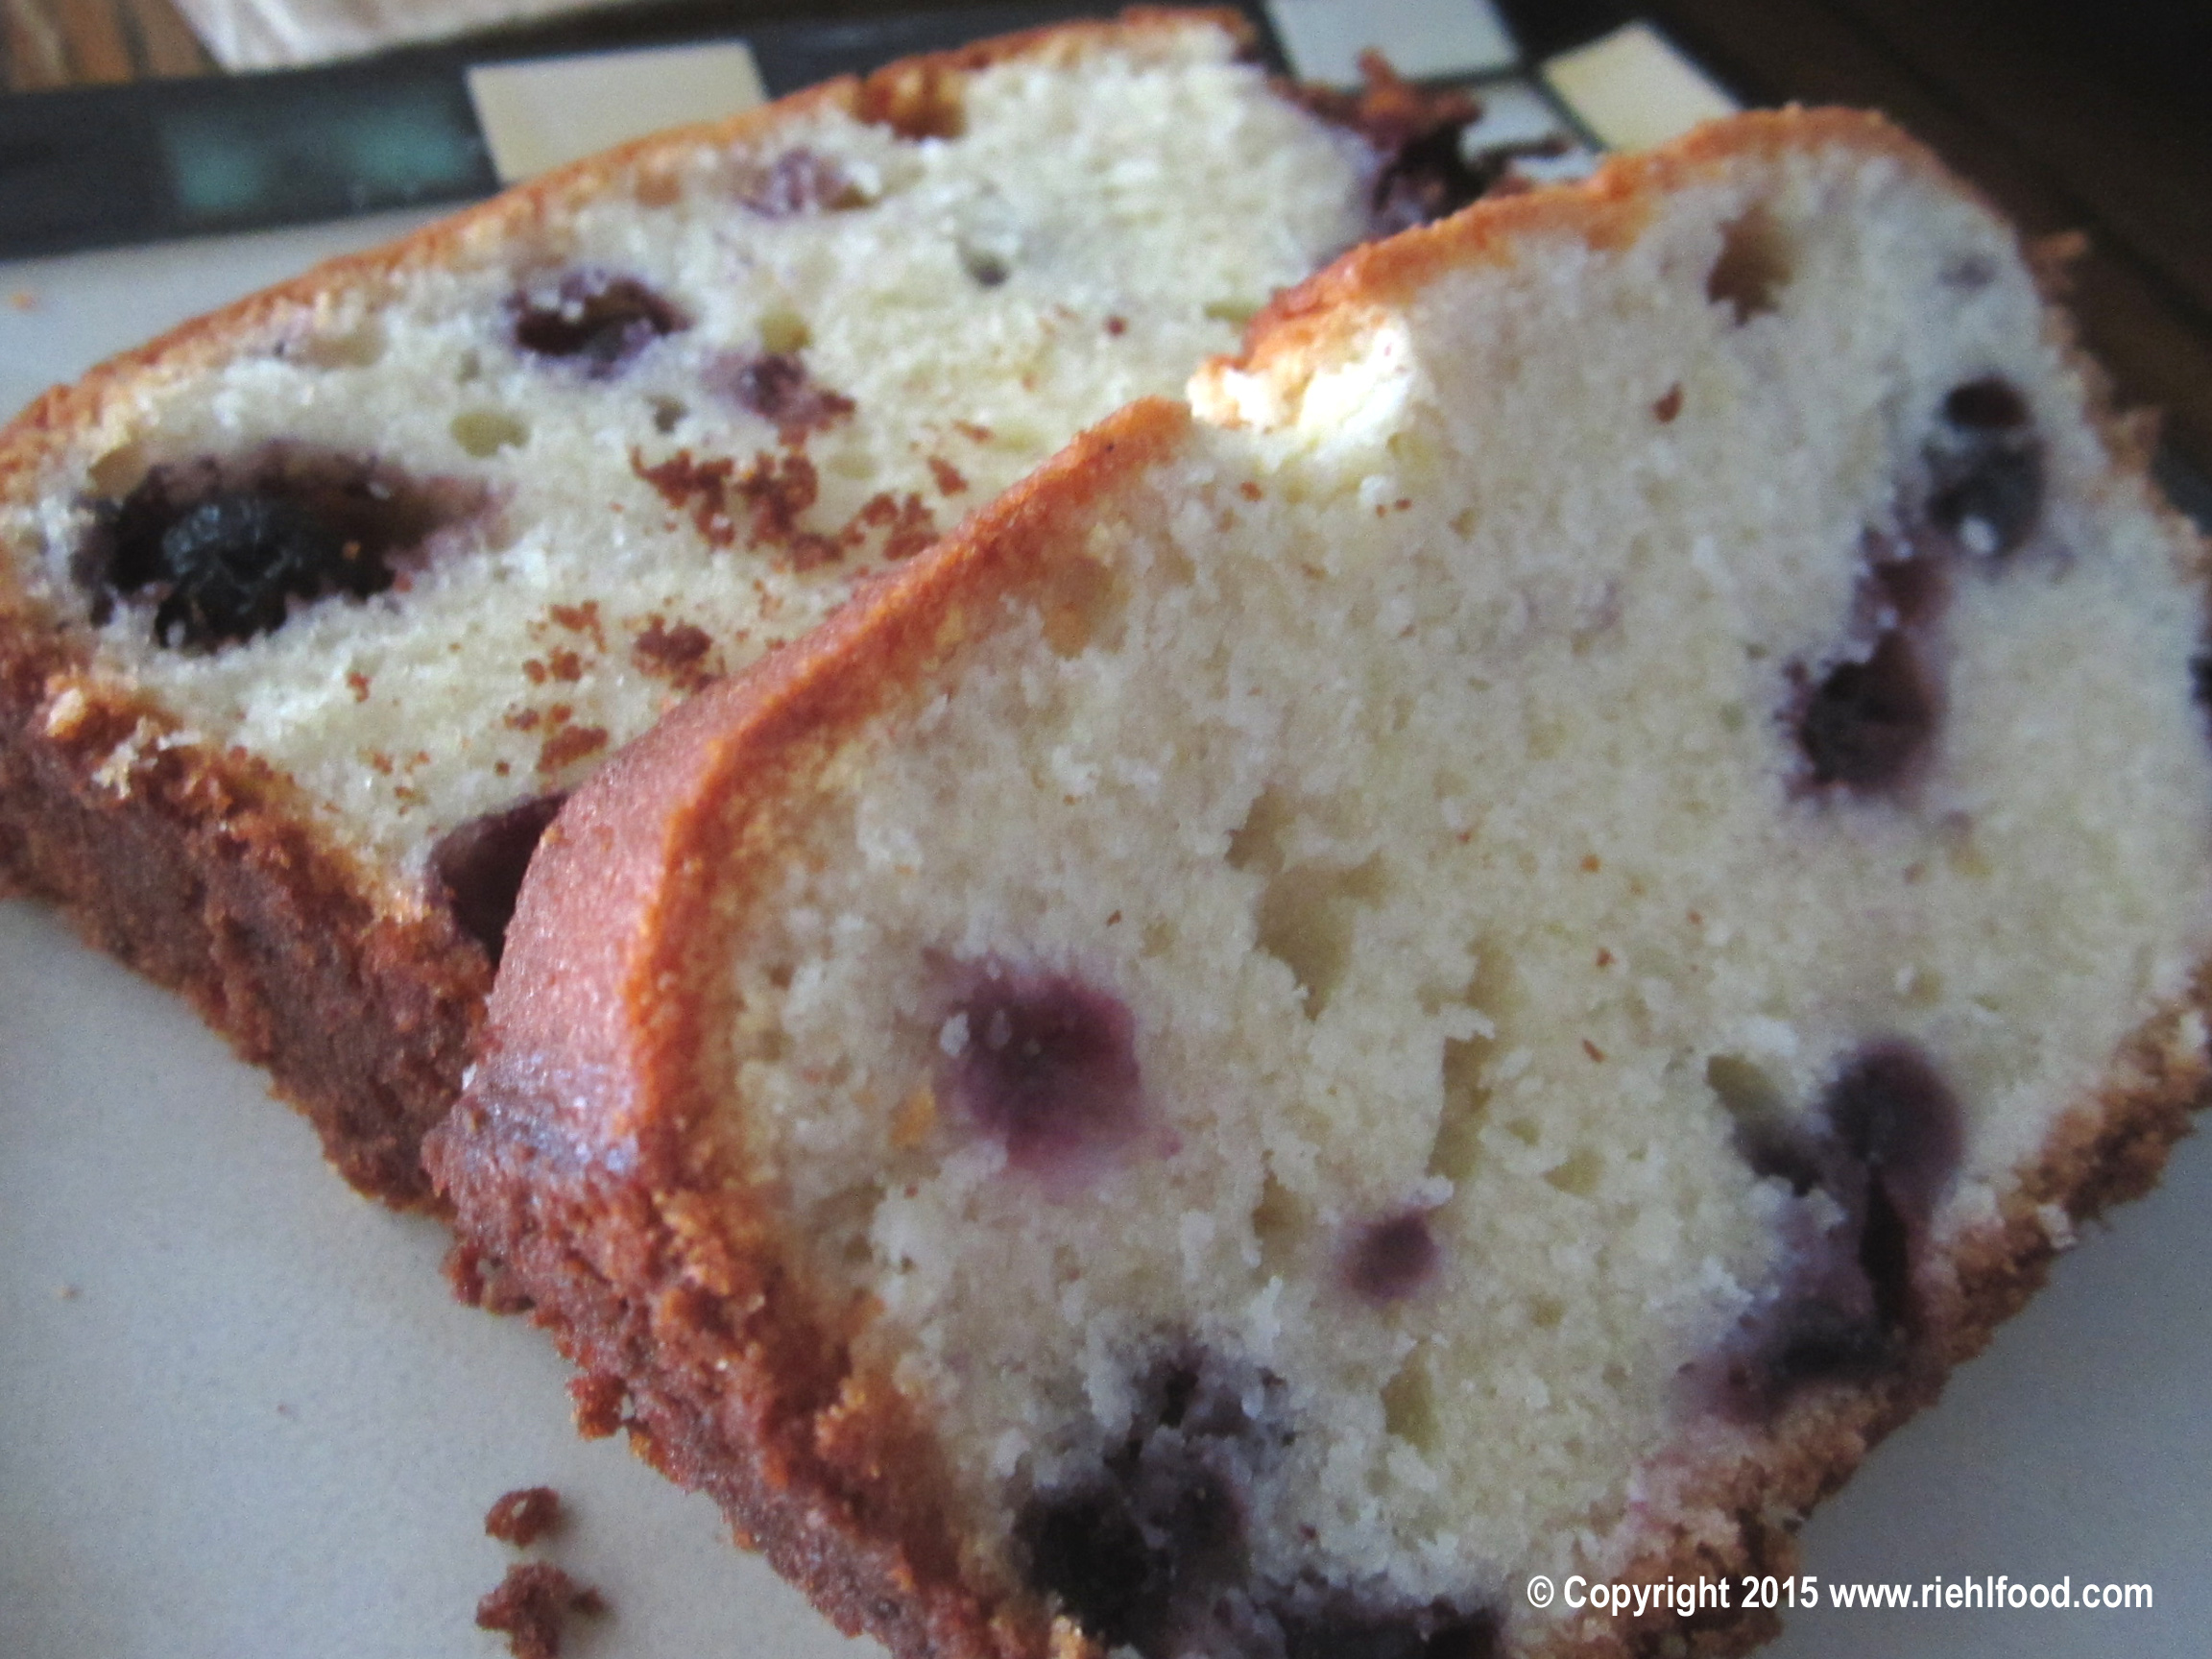 Vanilla Blueberry Loaf